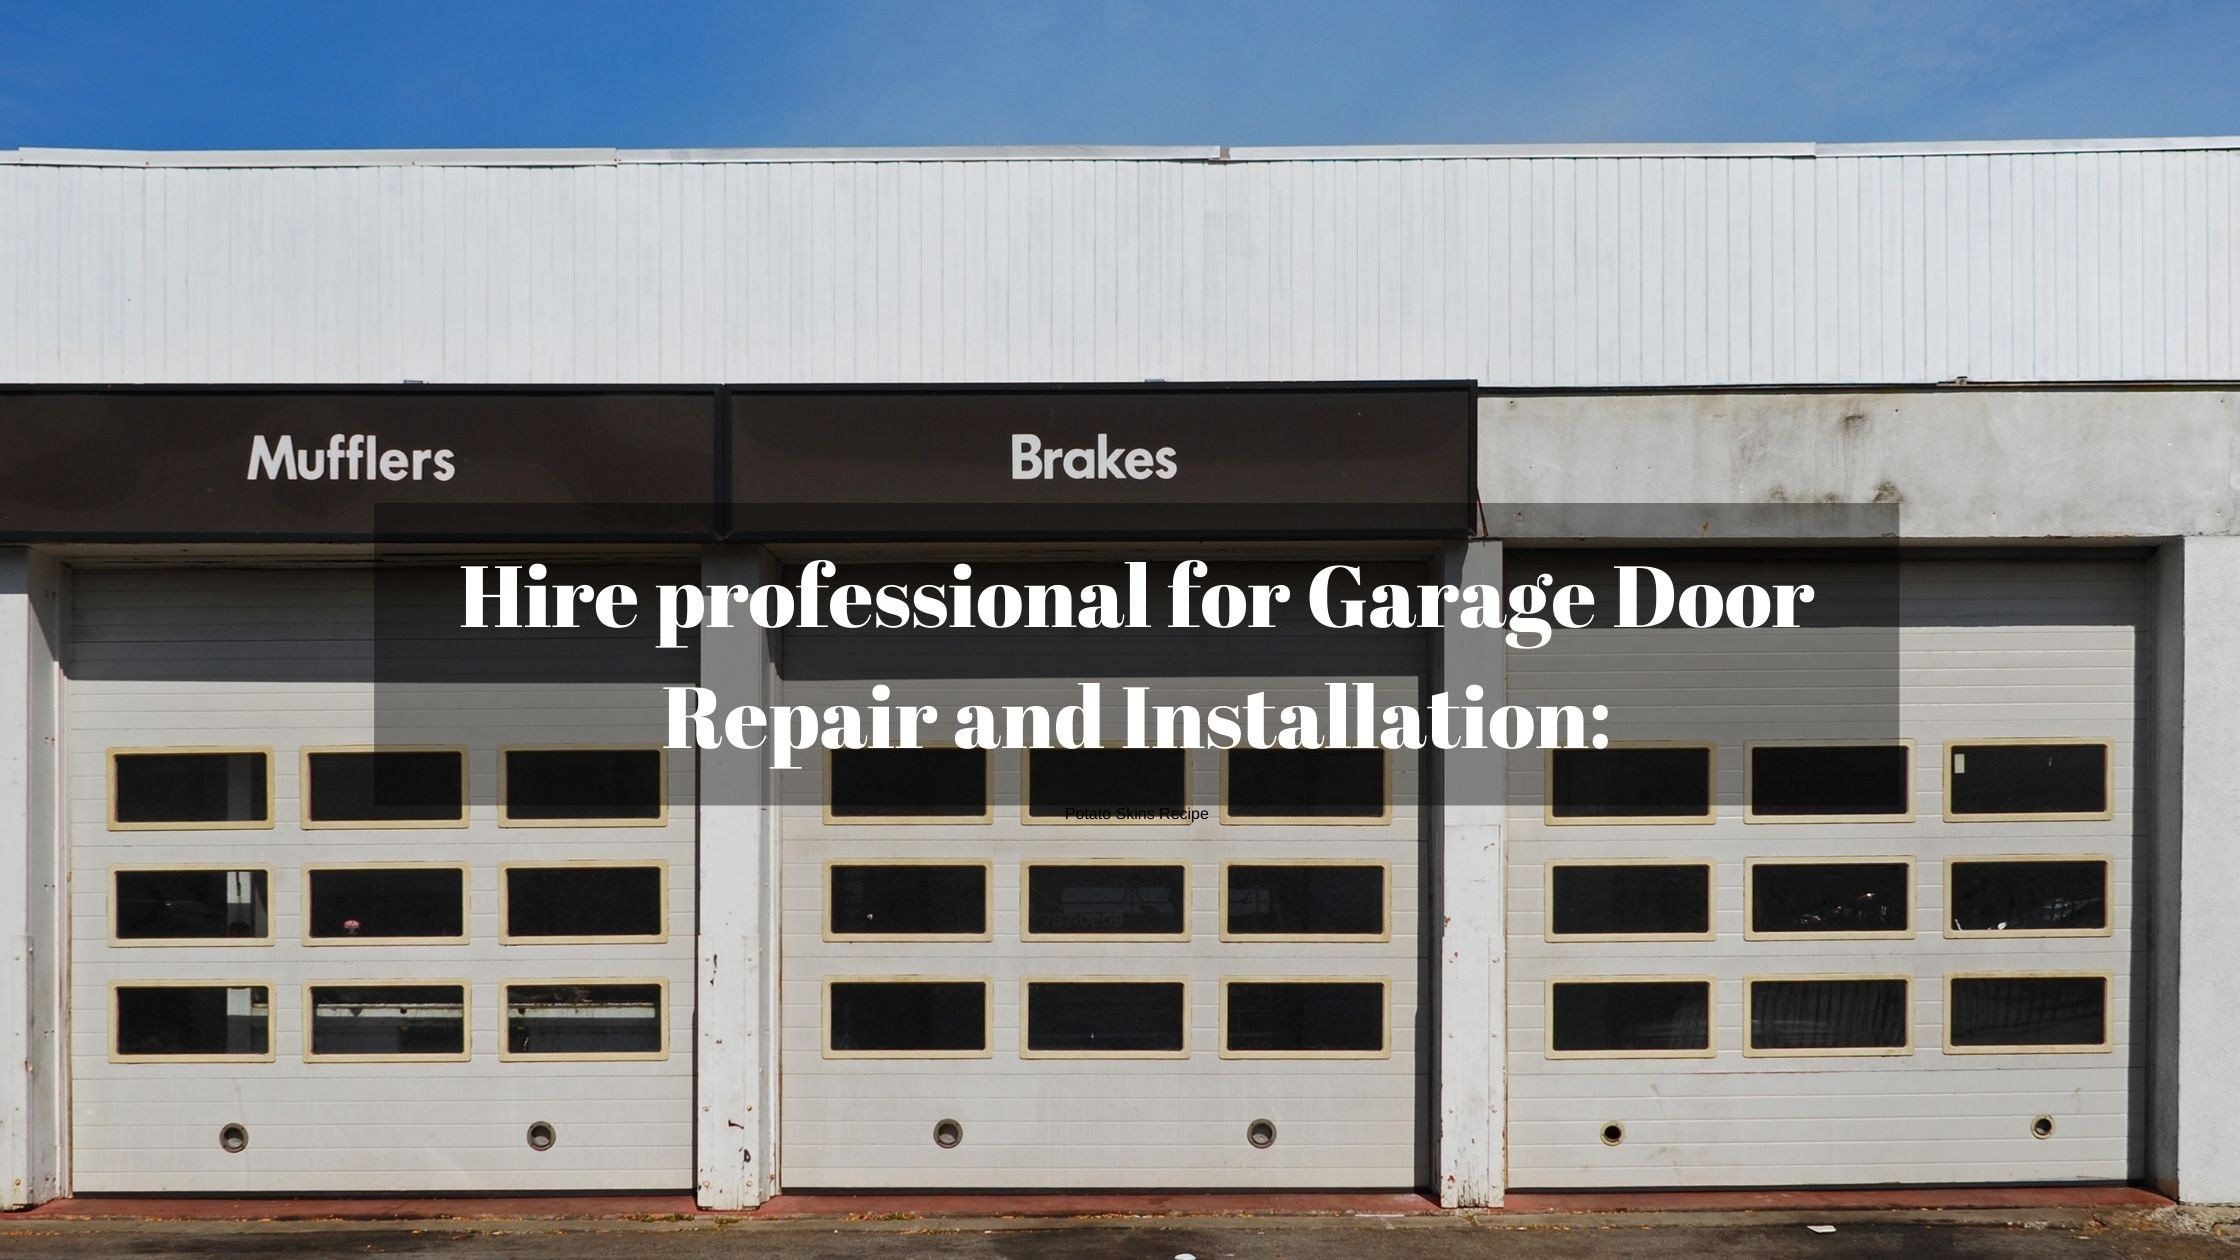 Hire professional for Garage Door Repair and Installation: